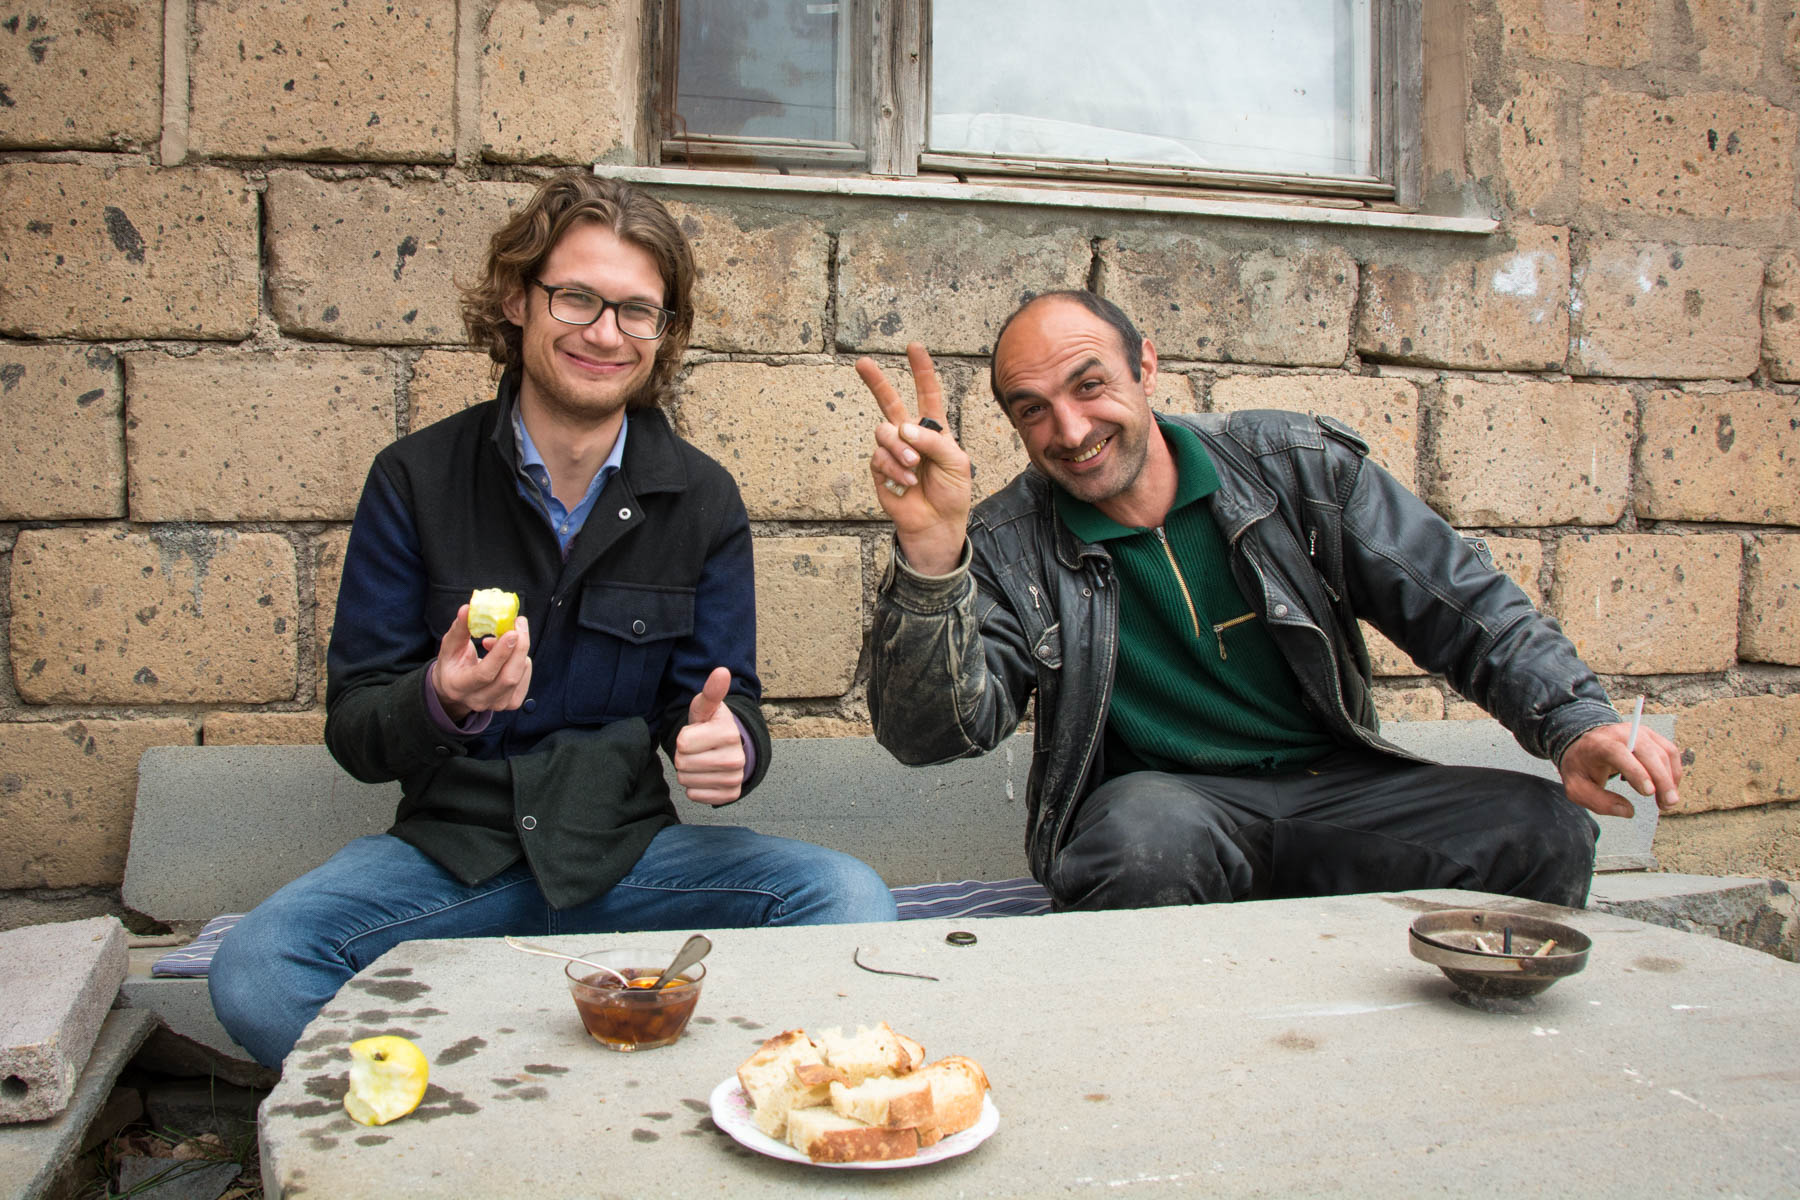 Chilling with a friendly Armenian man in Yeghegnadzor, Armenia - Lost With Purpose